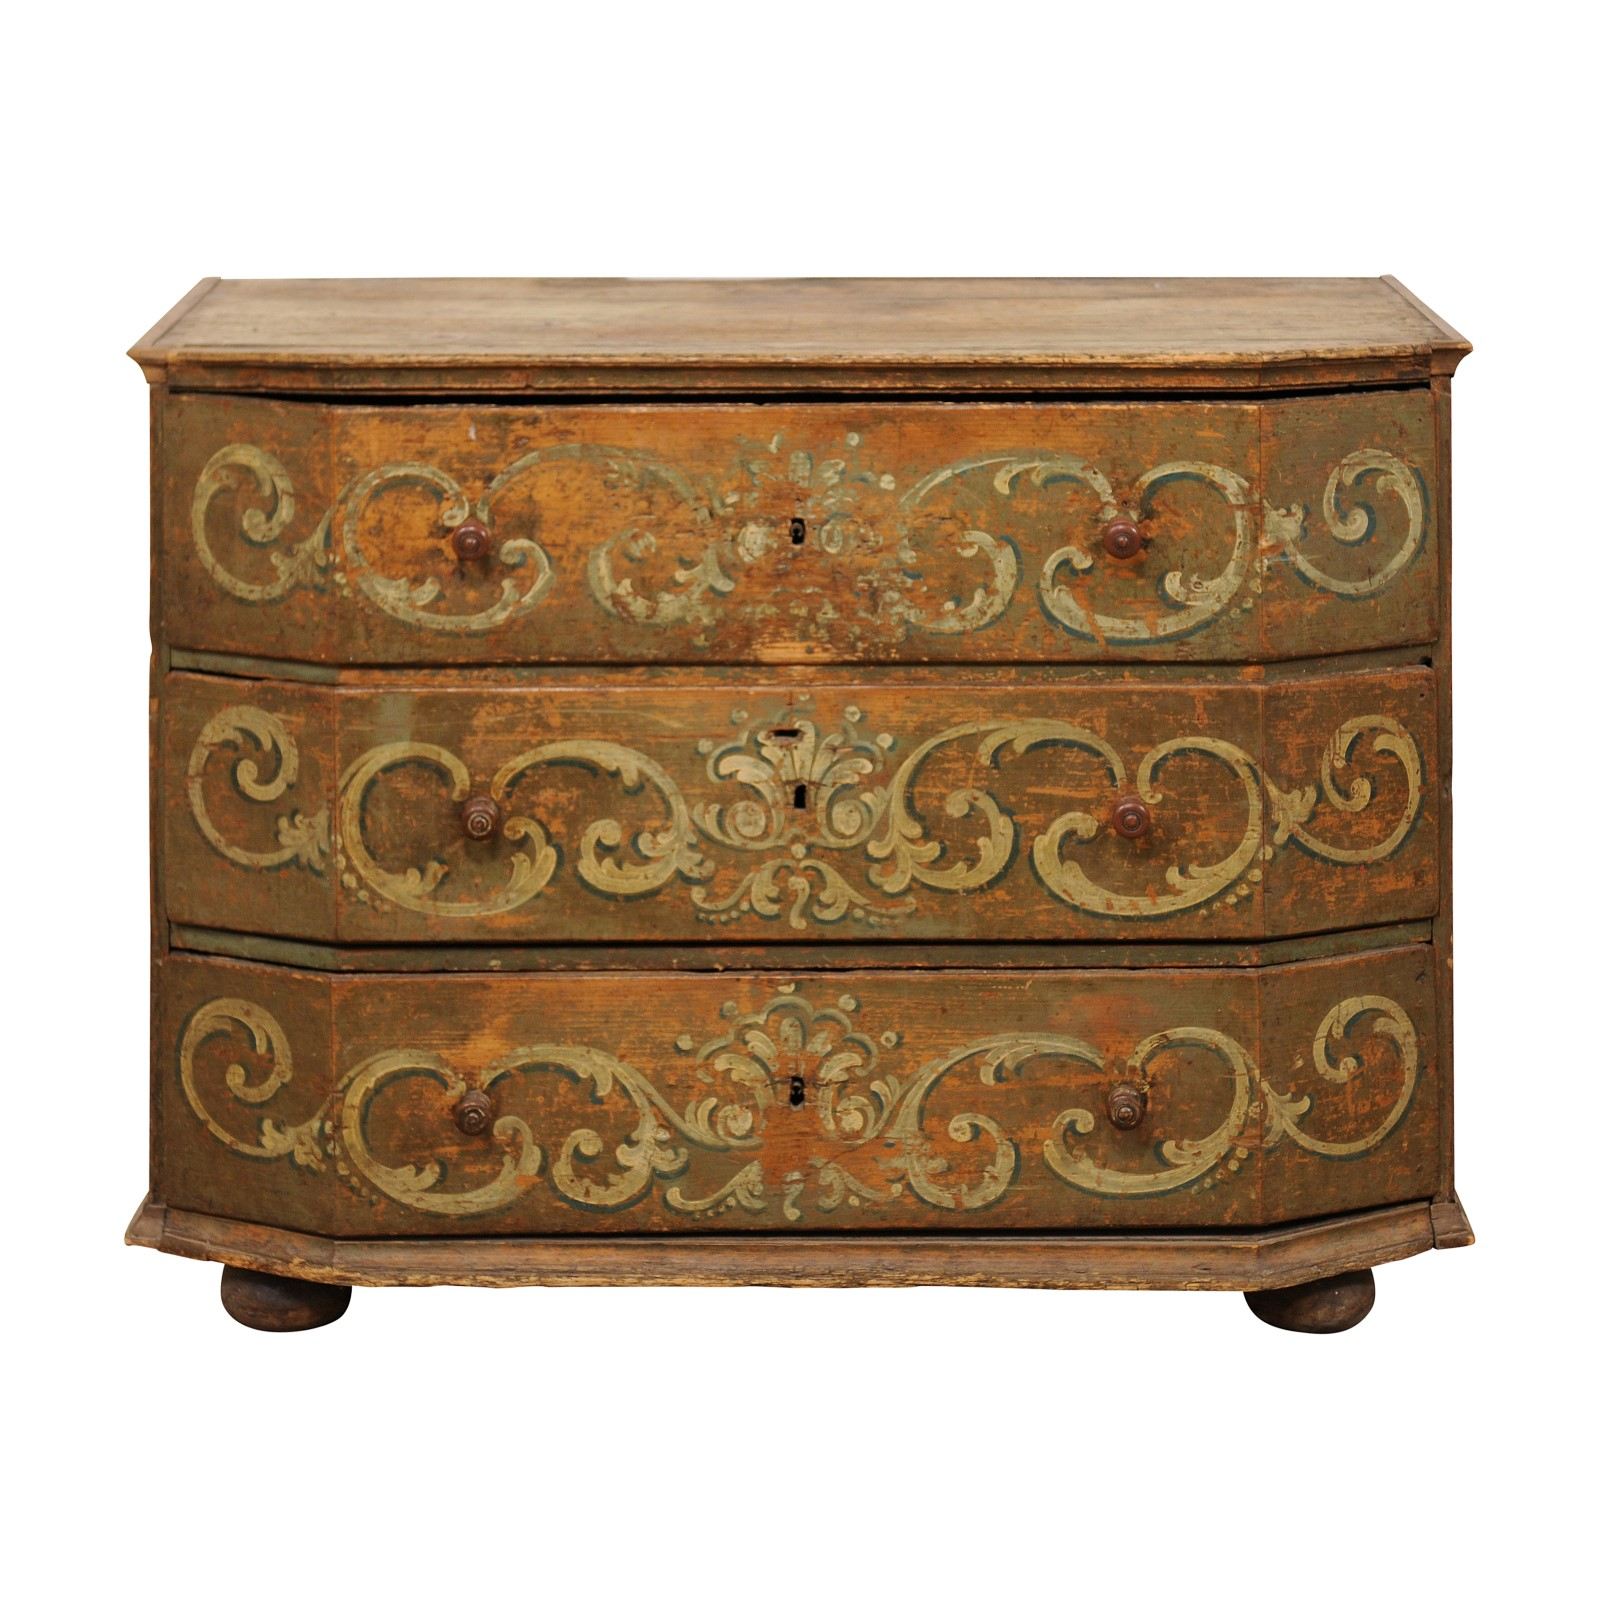 A Fabulous 18th C. Italian Chest